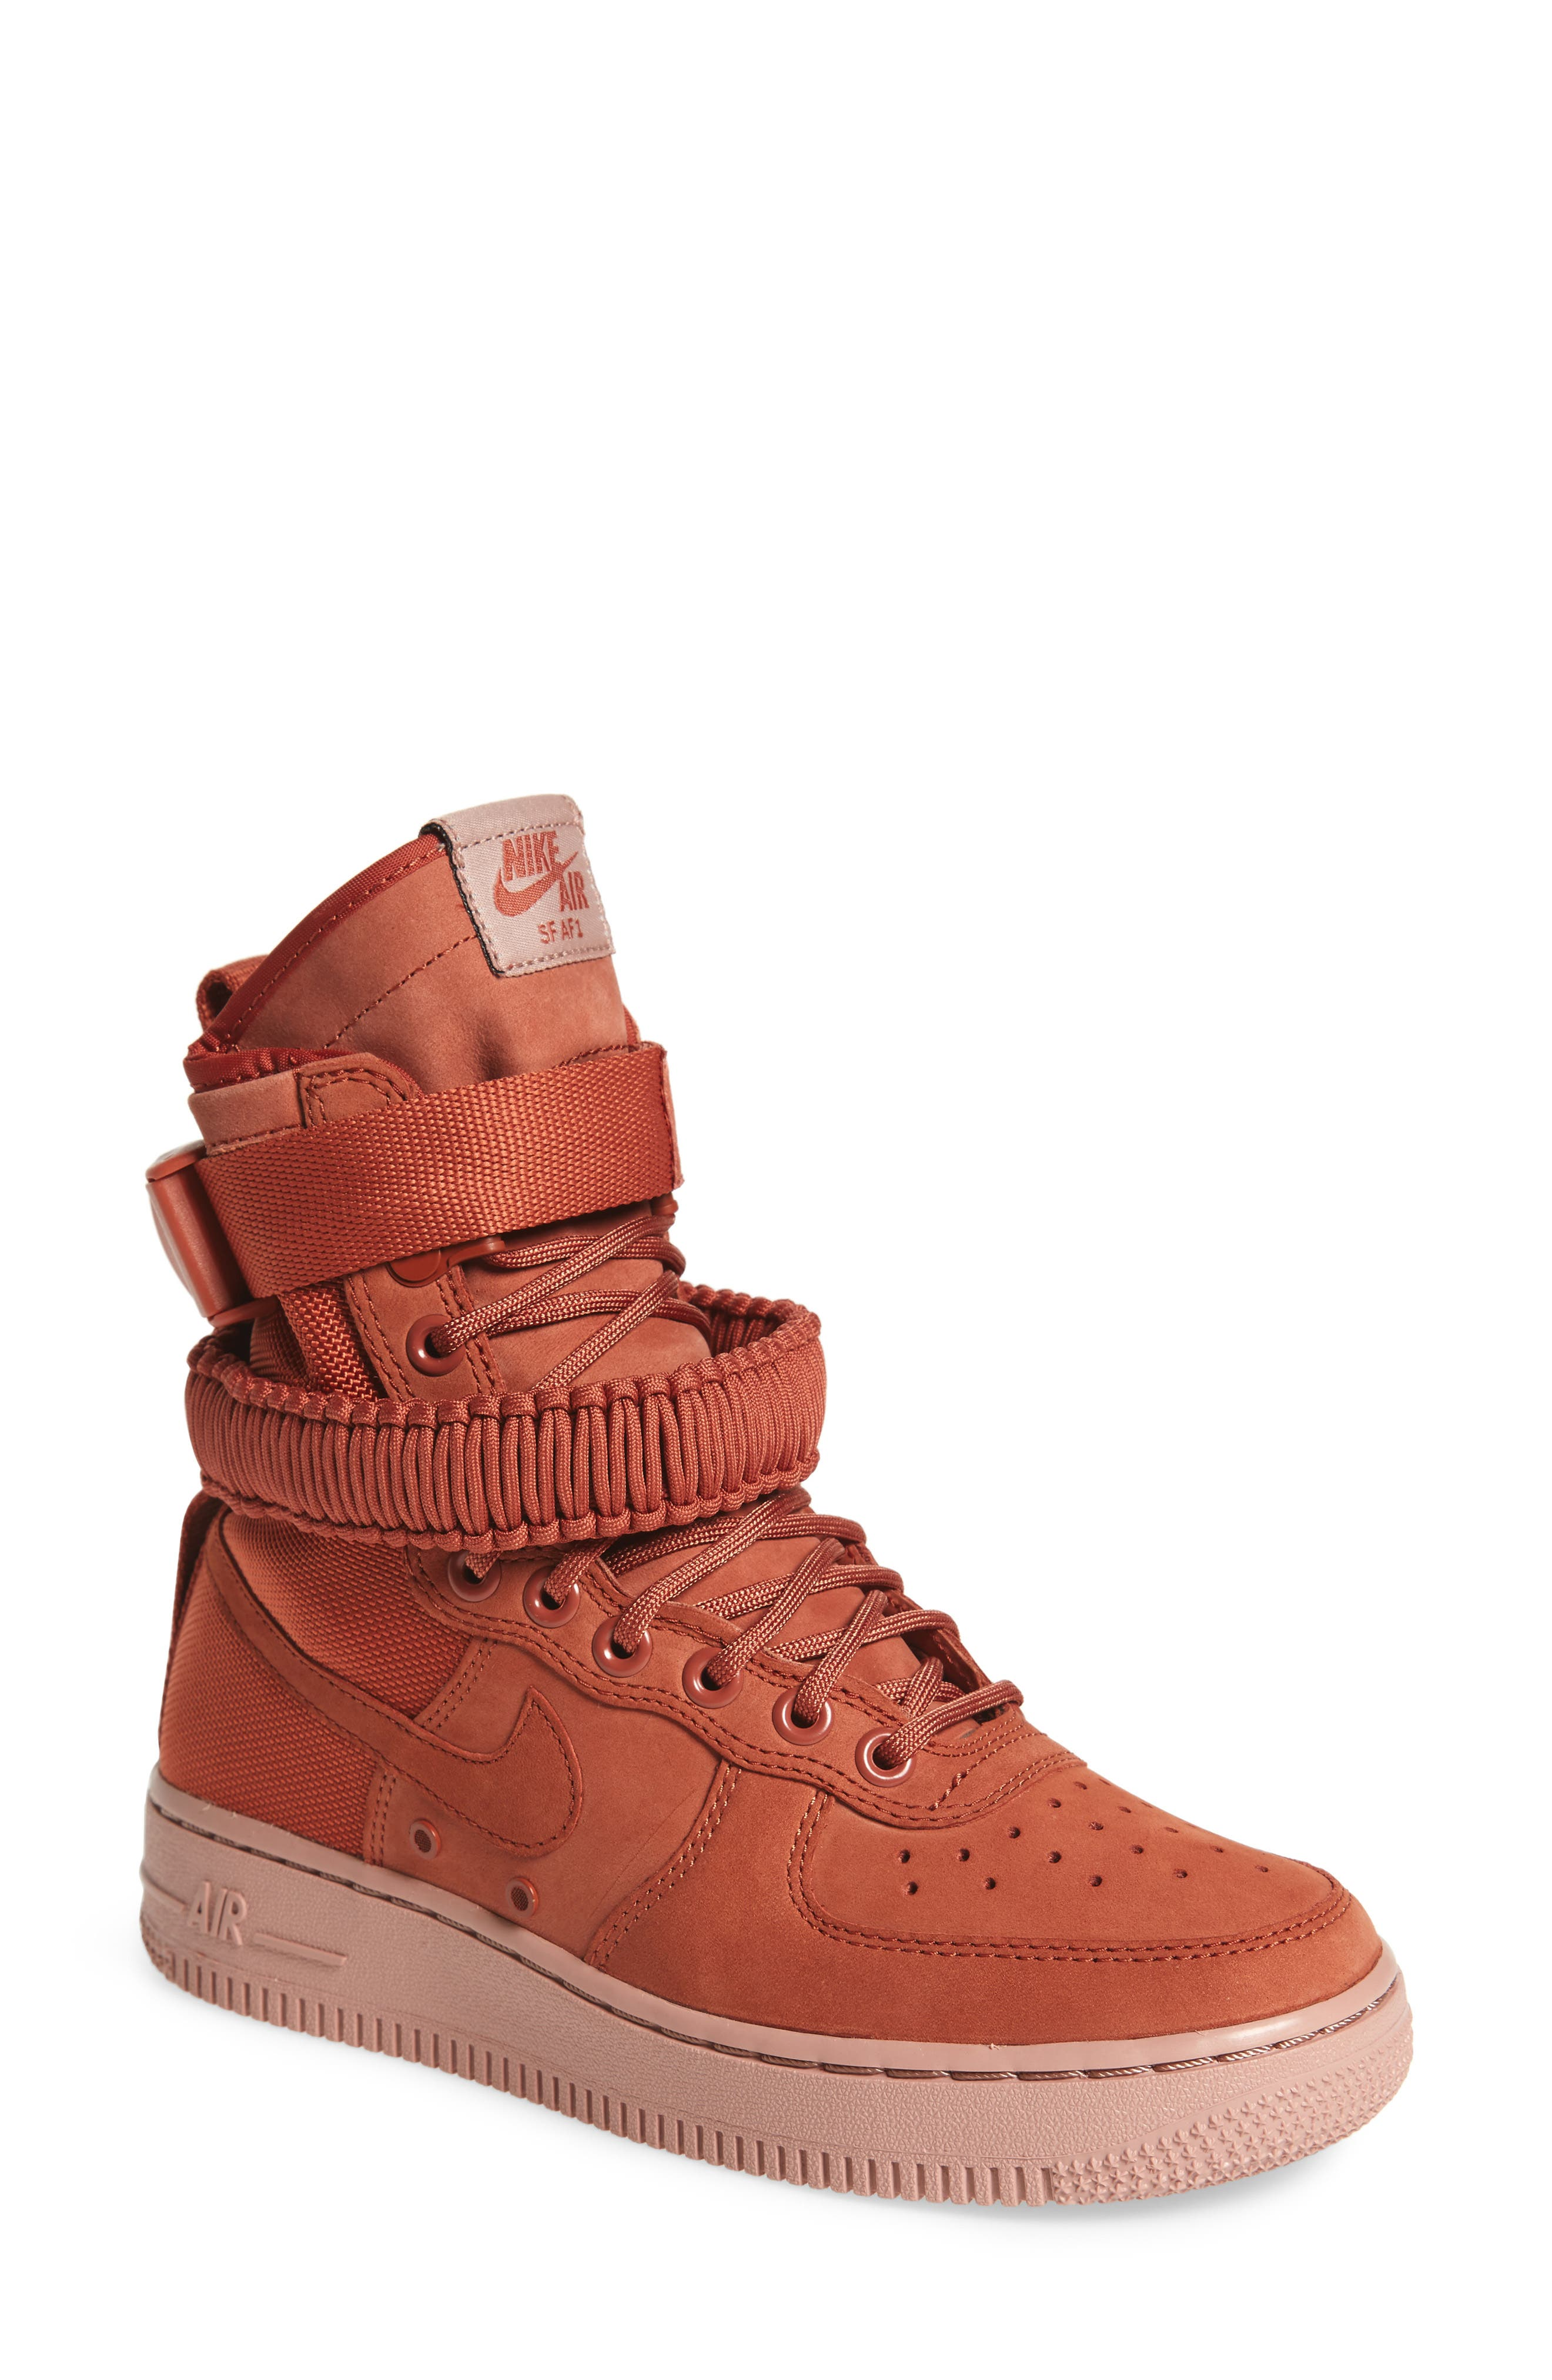 Nike SF Air Force 1 High Top Sneaker (Women)